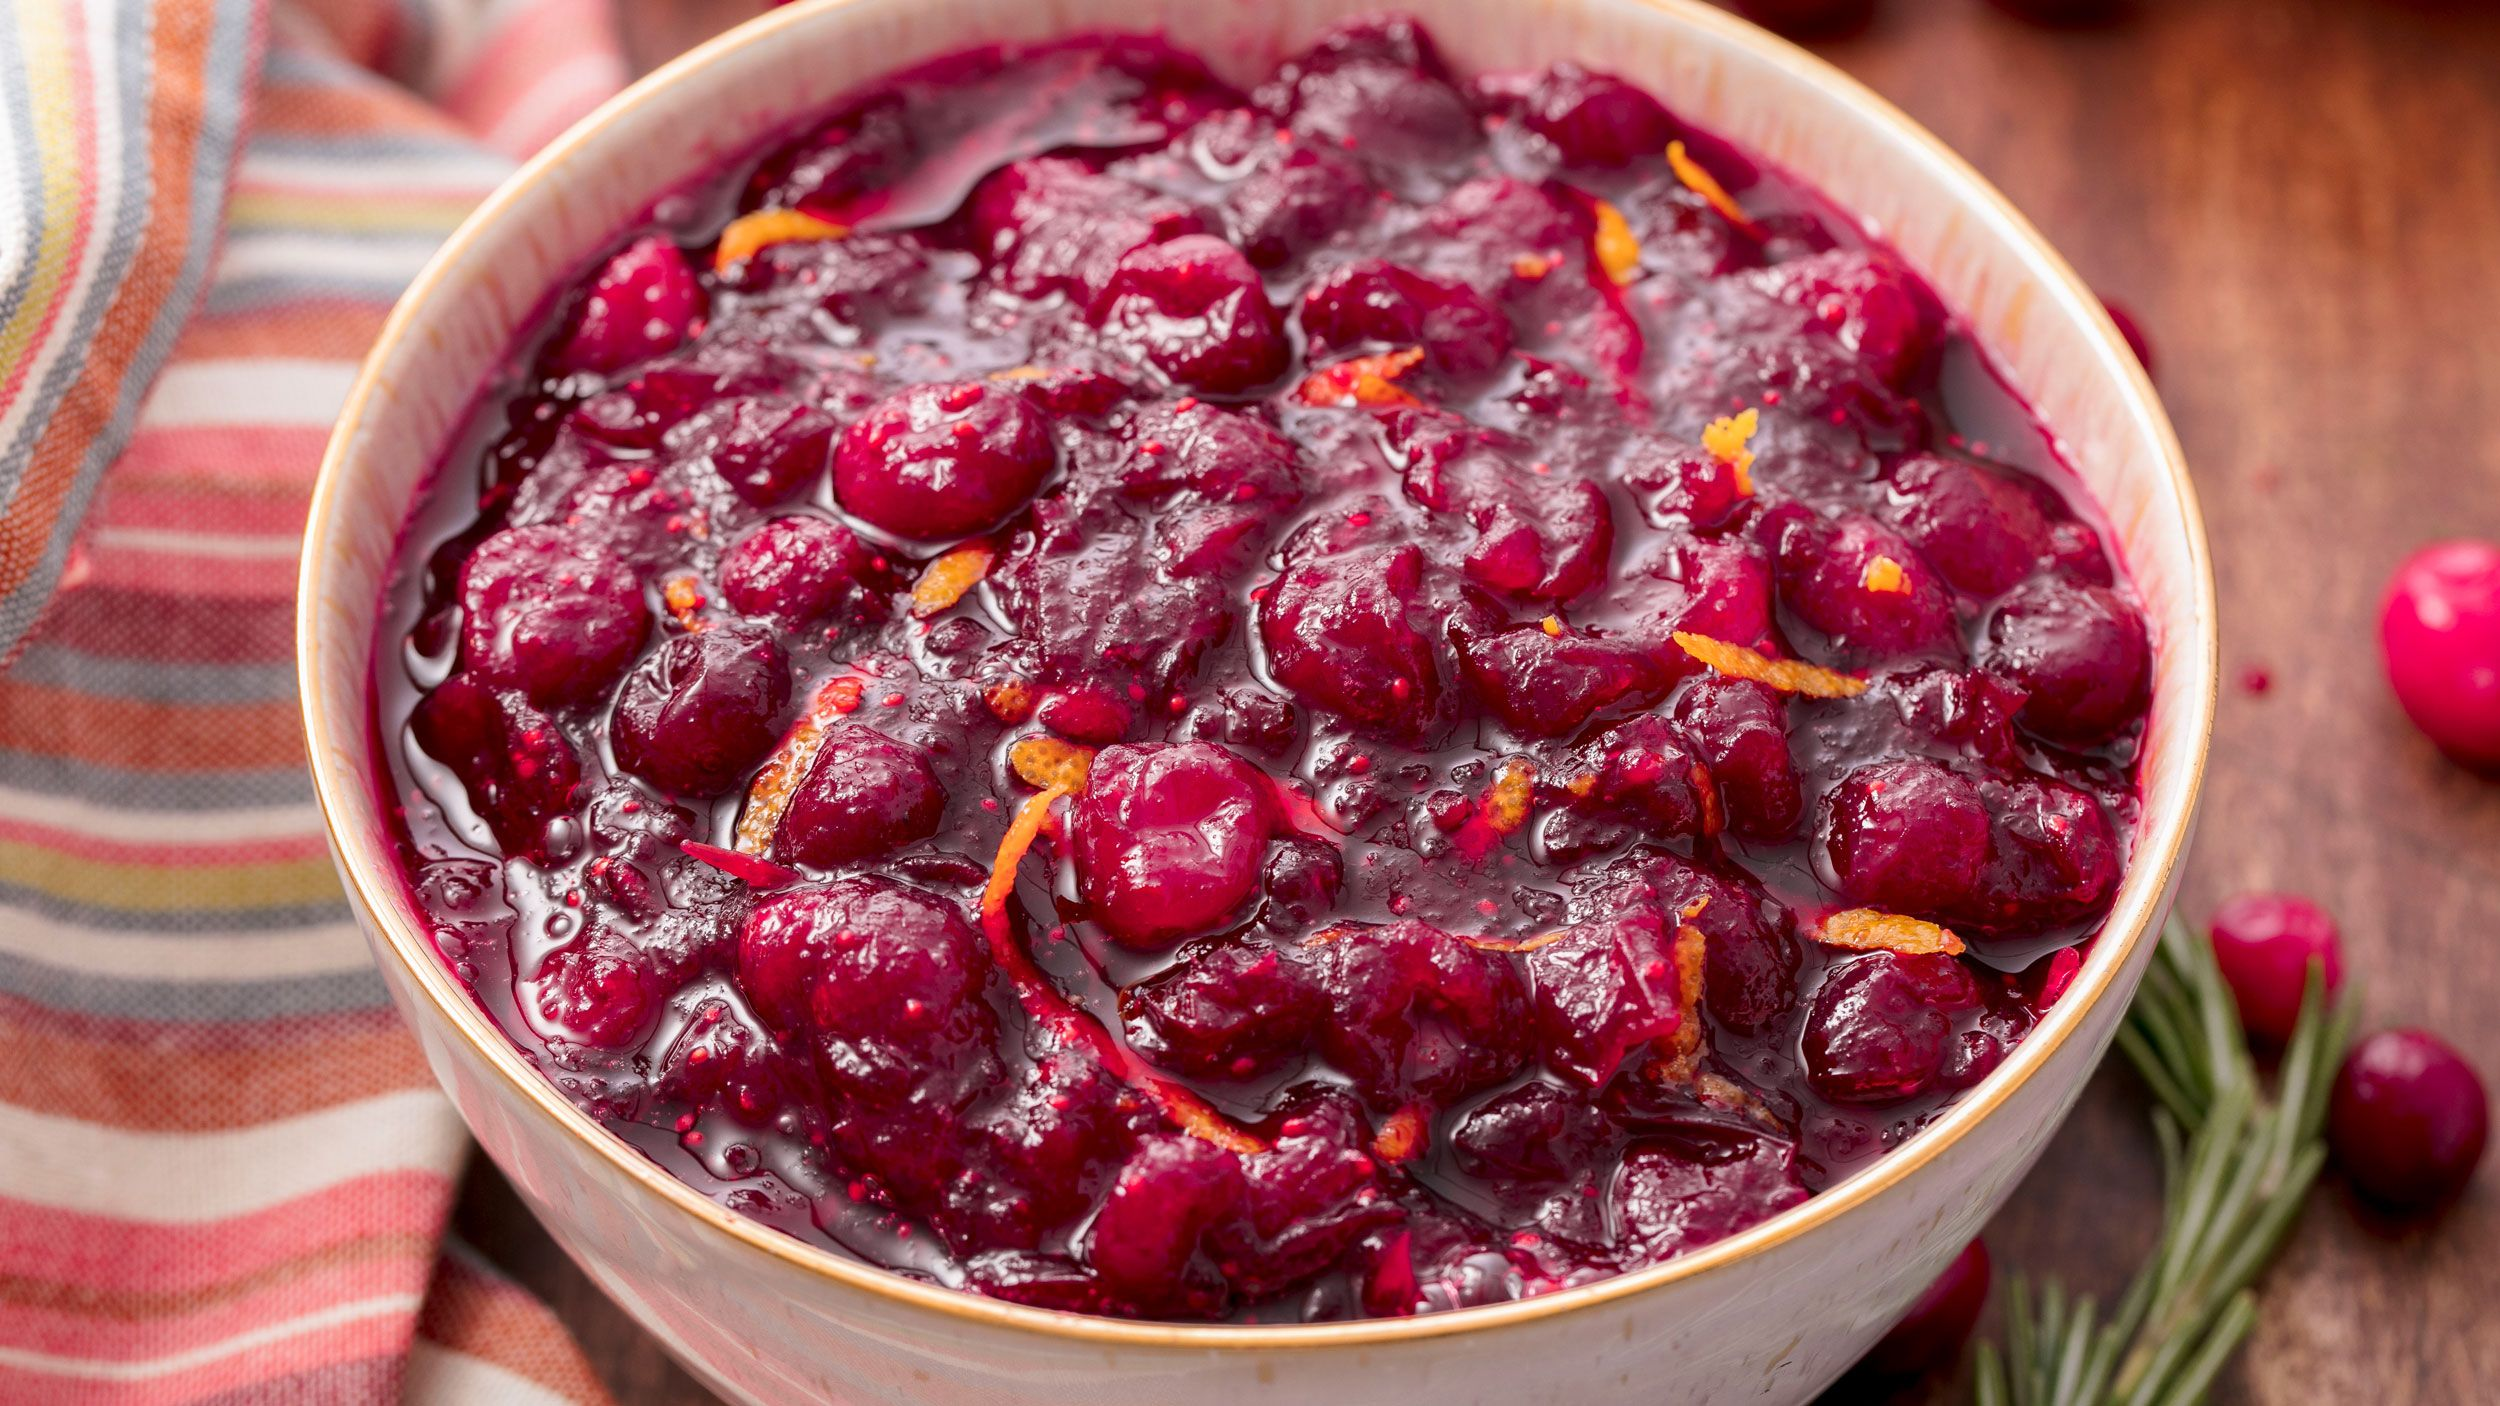 Best Homemade Cranberry Sauce Recipe How To Make Fresh Cranberry Sauce